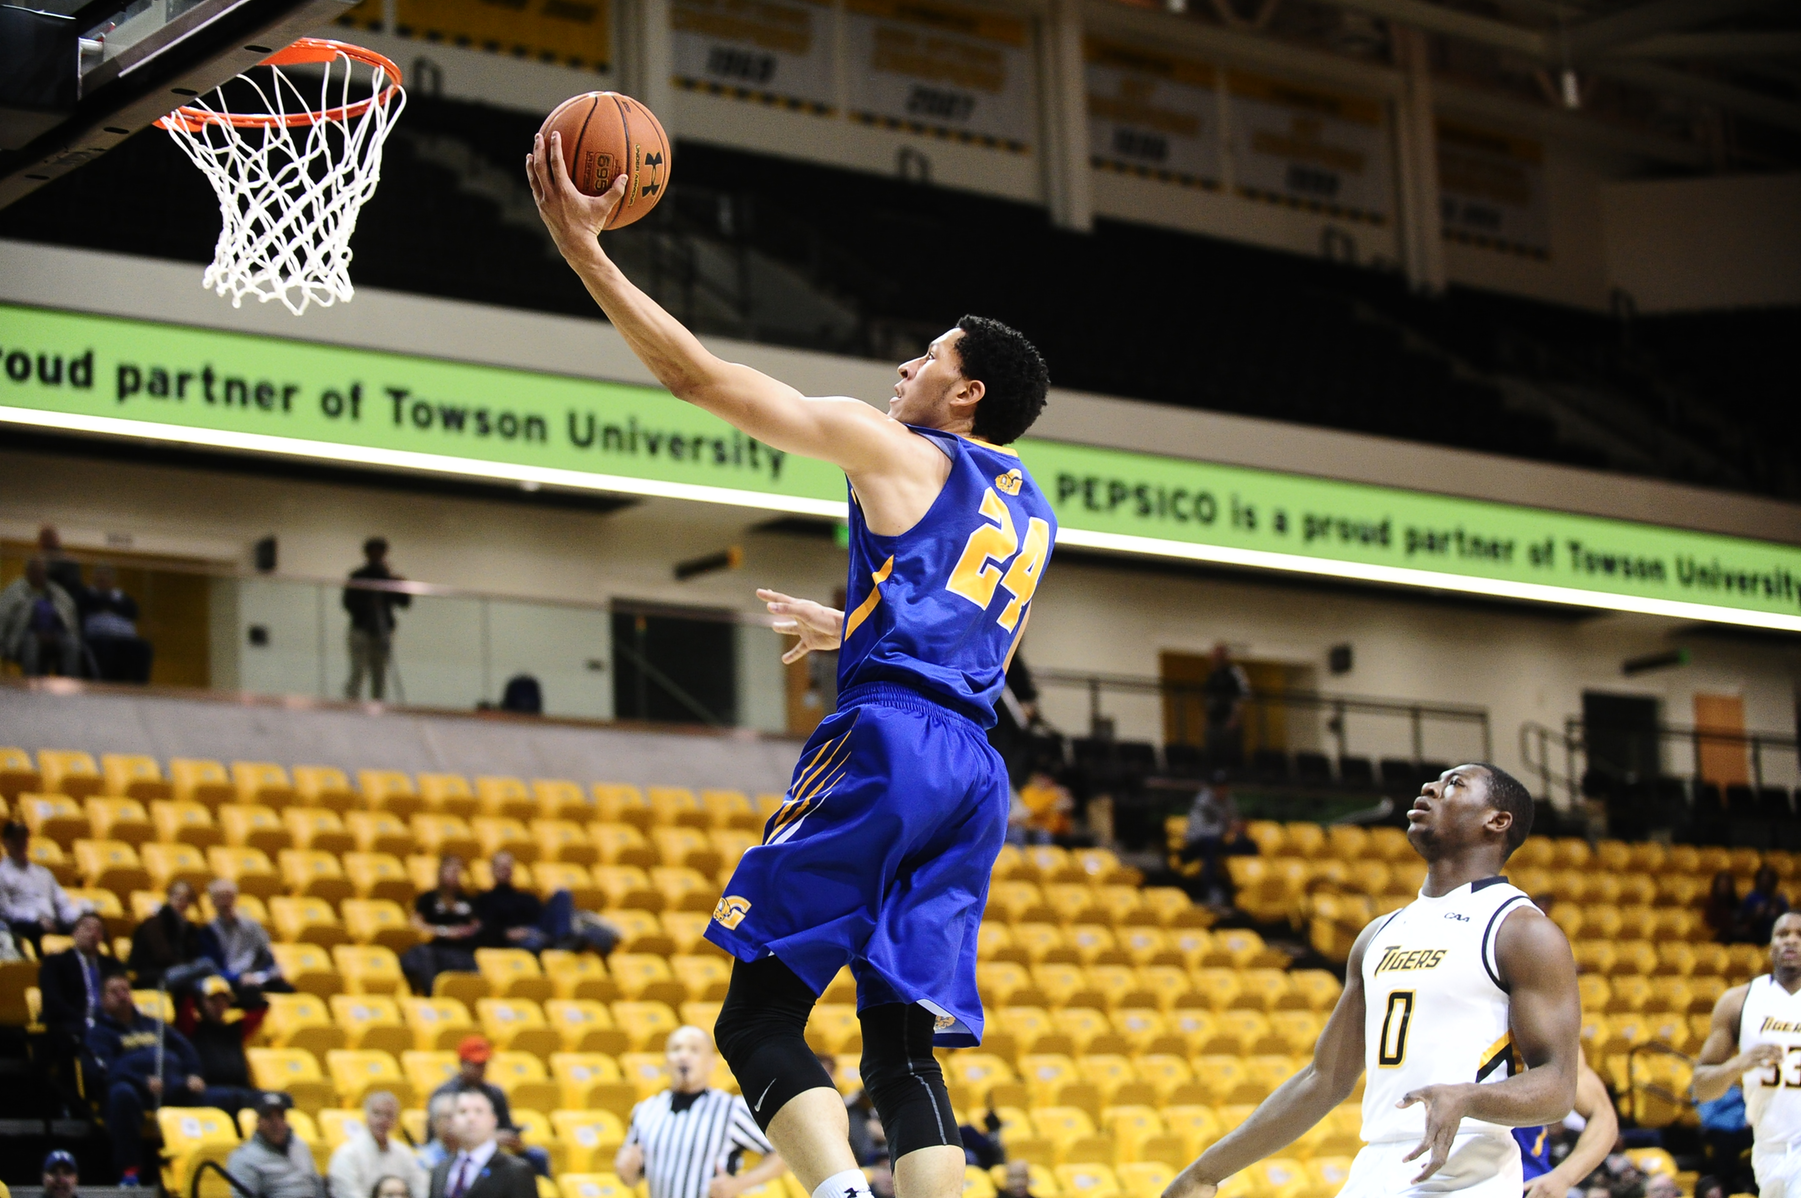 Goucher Falls Short in Landmark Conference Home Opener to 25th Ranked Susquehanna University